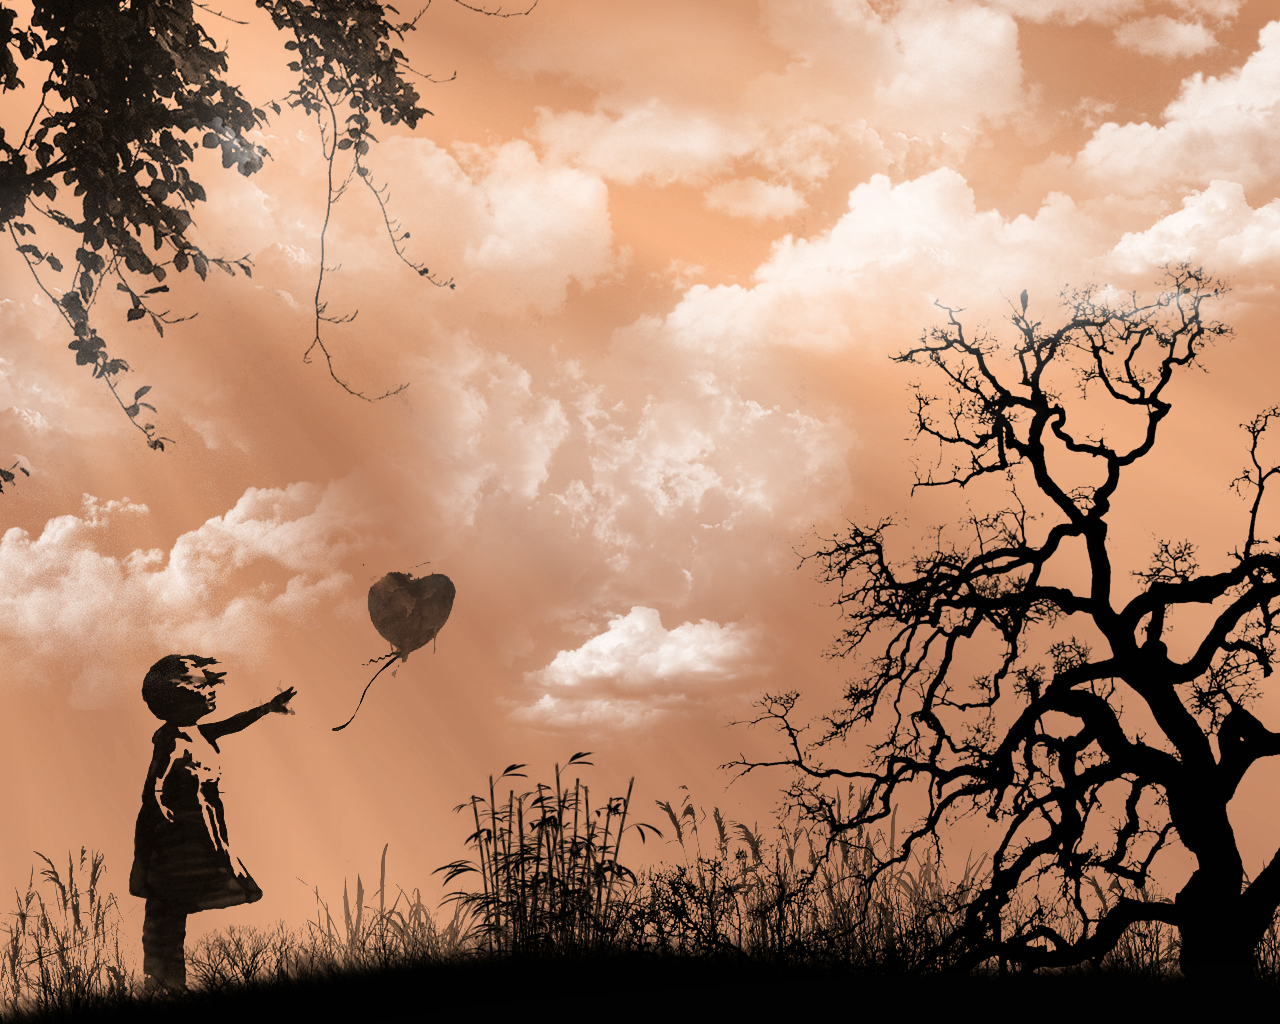 girl-and-heart-balloon-wallpapers_9675_1280x1024